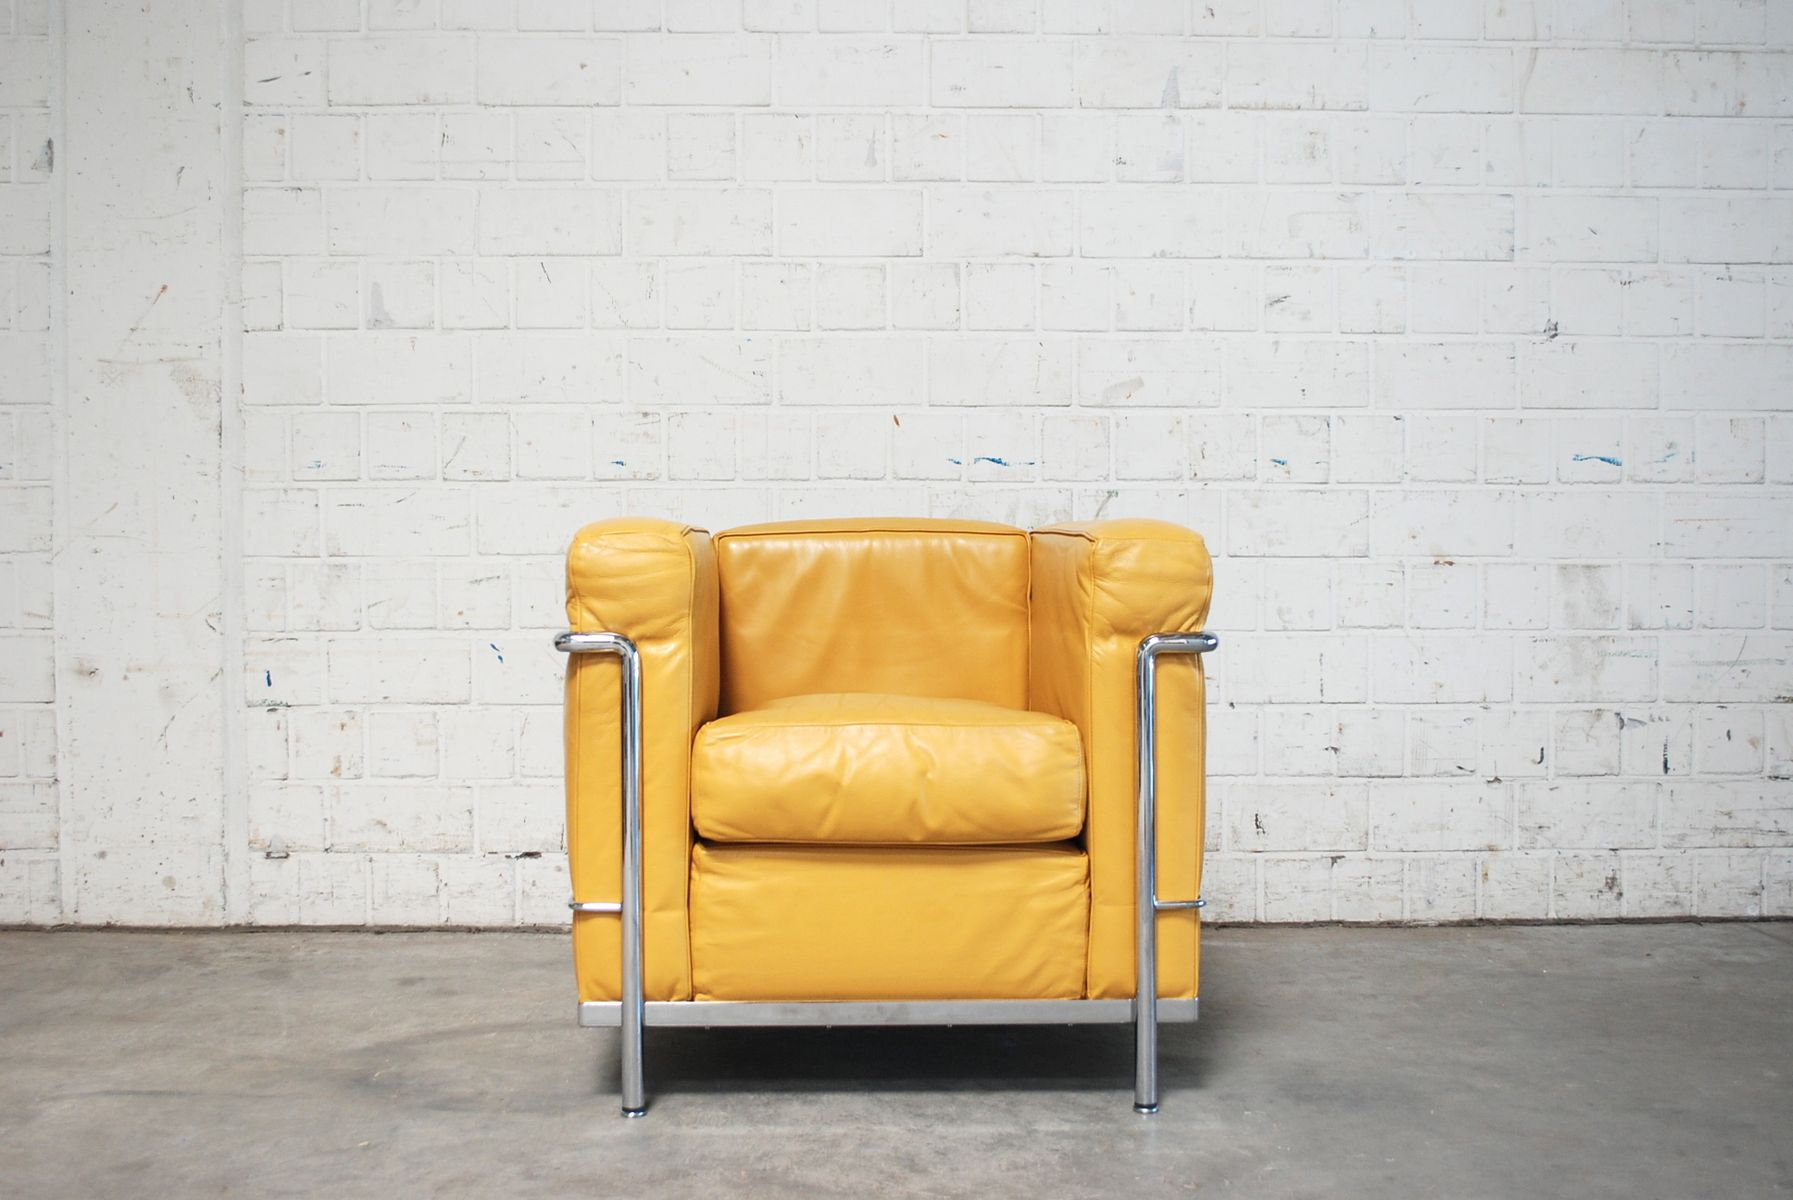 Le corbusier chair vintage - Vintage Yellow Model Lc2 Leather Chair By Le Corbusier For Cassina For Sale At Pamono